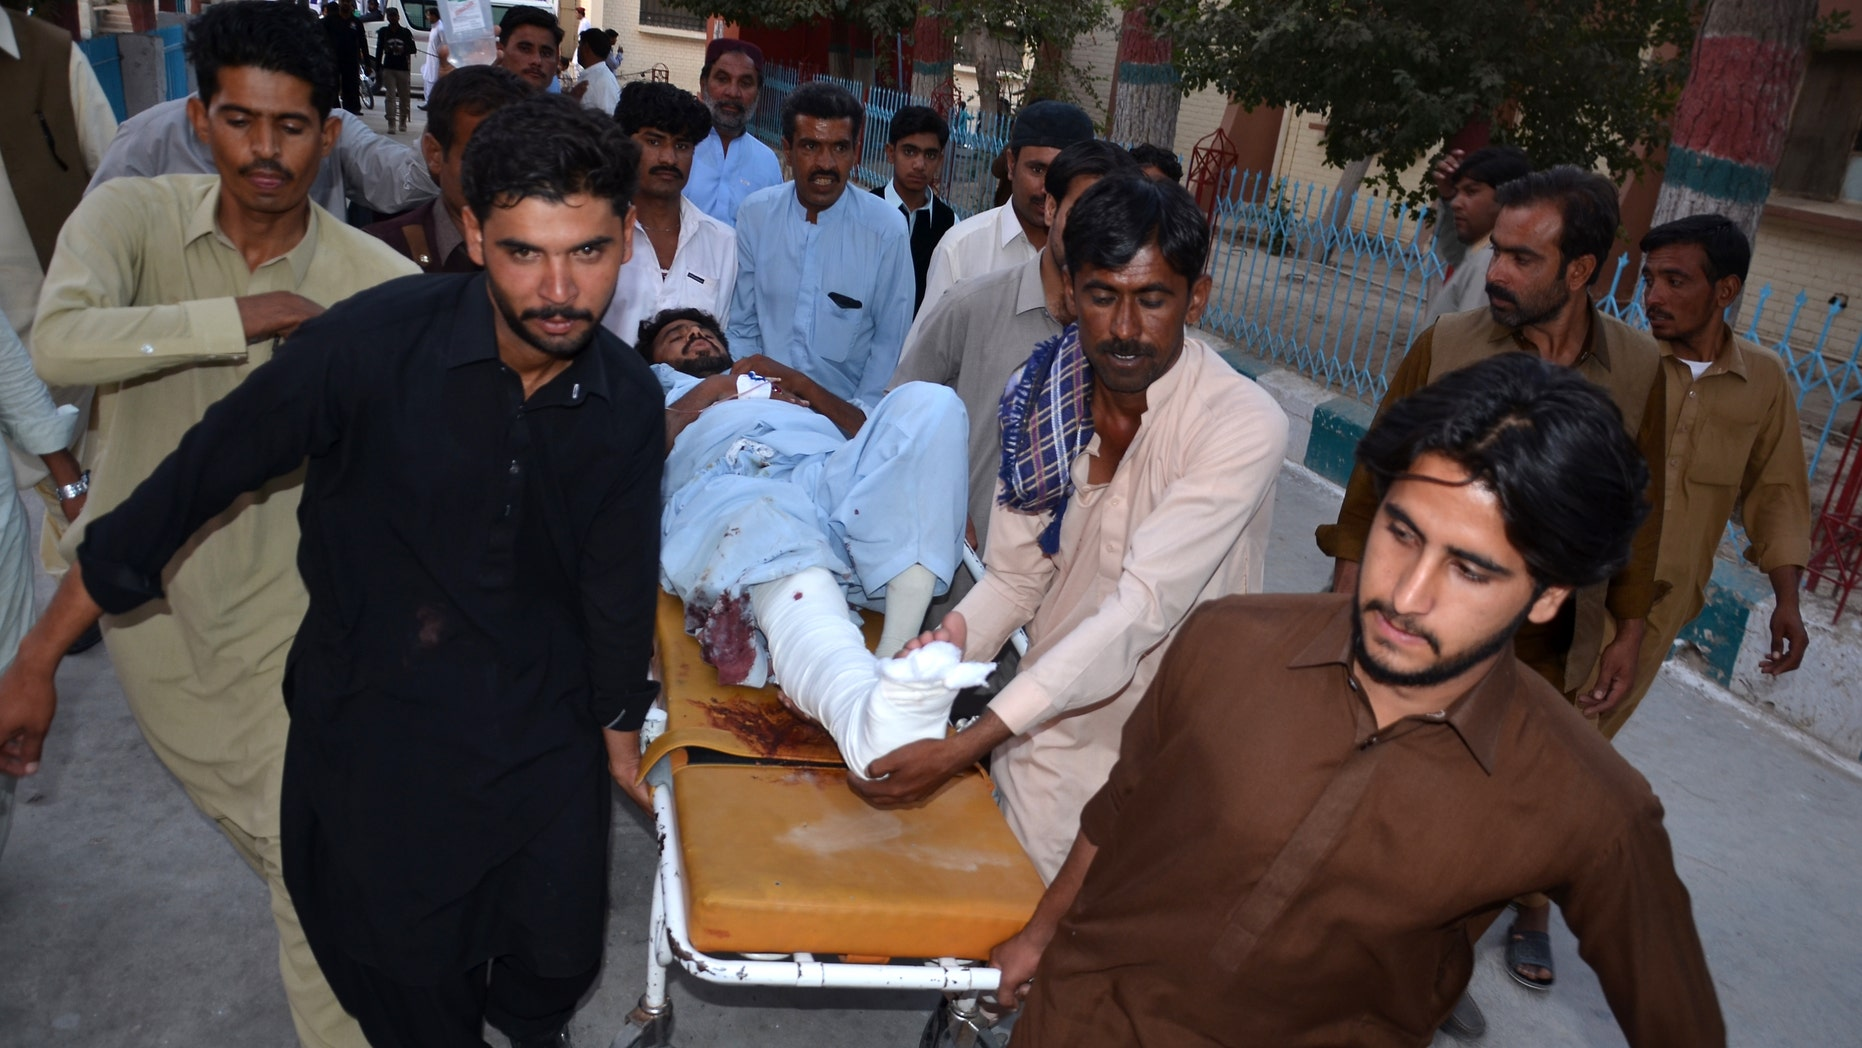 People rush an injured person to a hospital after a bomb blast in Pakistan.